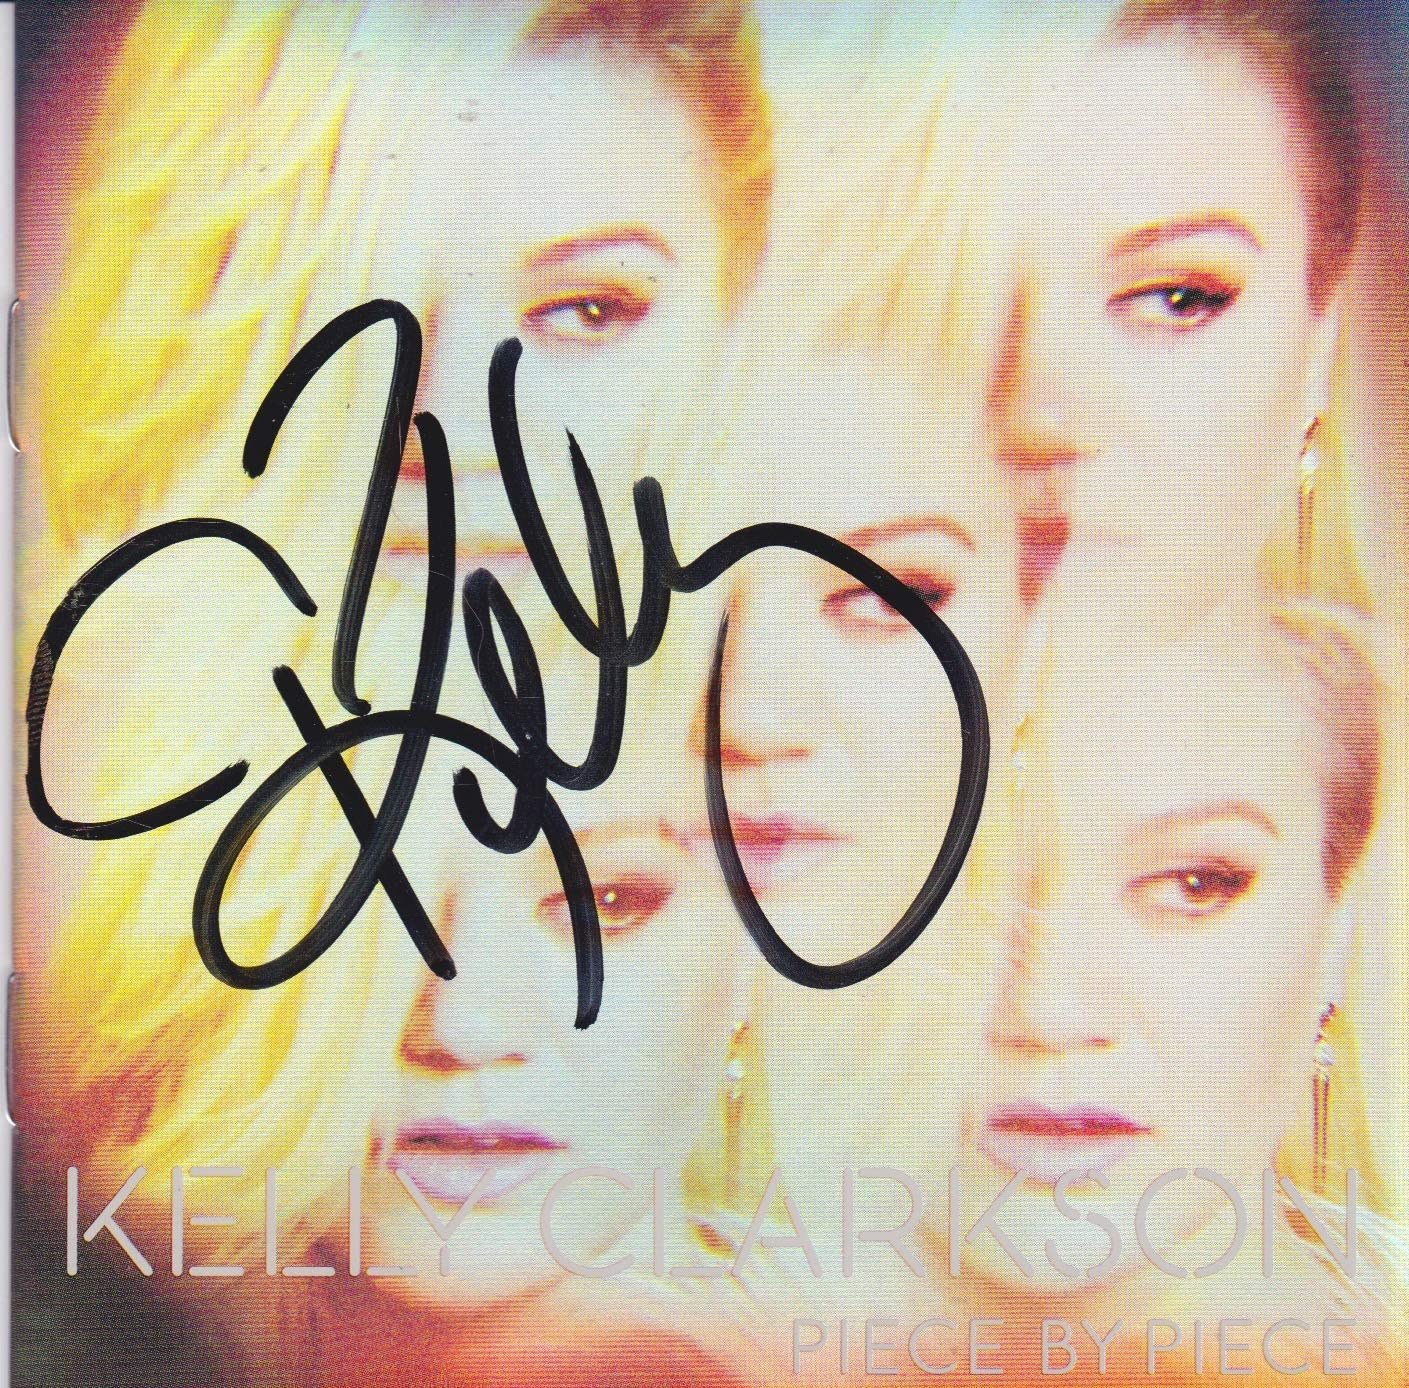 Kelly Clarkson Outlet SALE CD signed low-pricing